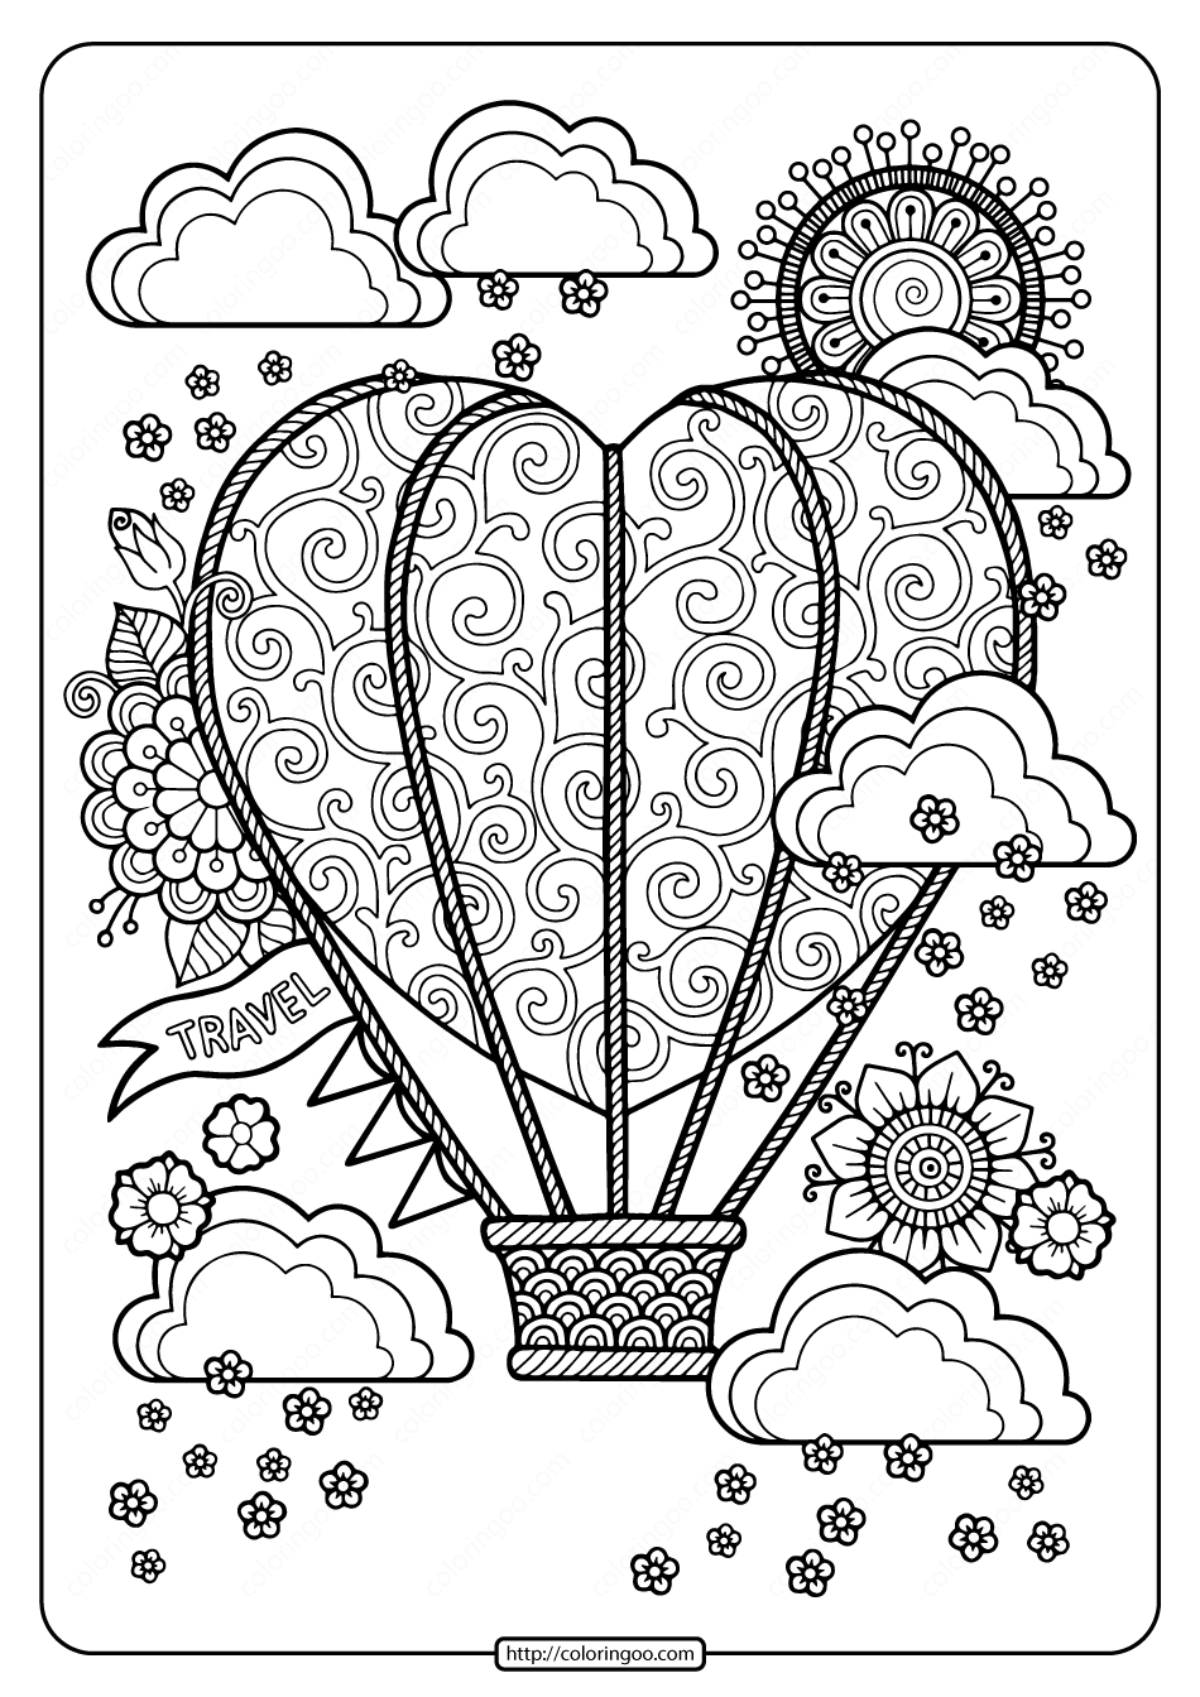 Hearts   Free Printable Templates & Coloring Pages   FirstPalette.com   1697x1200